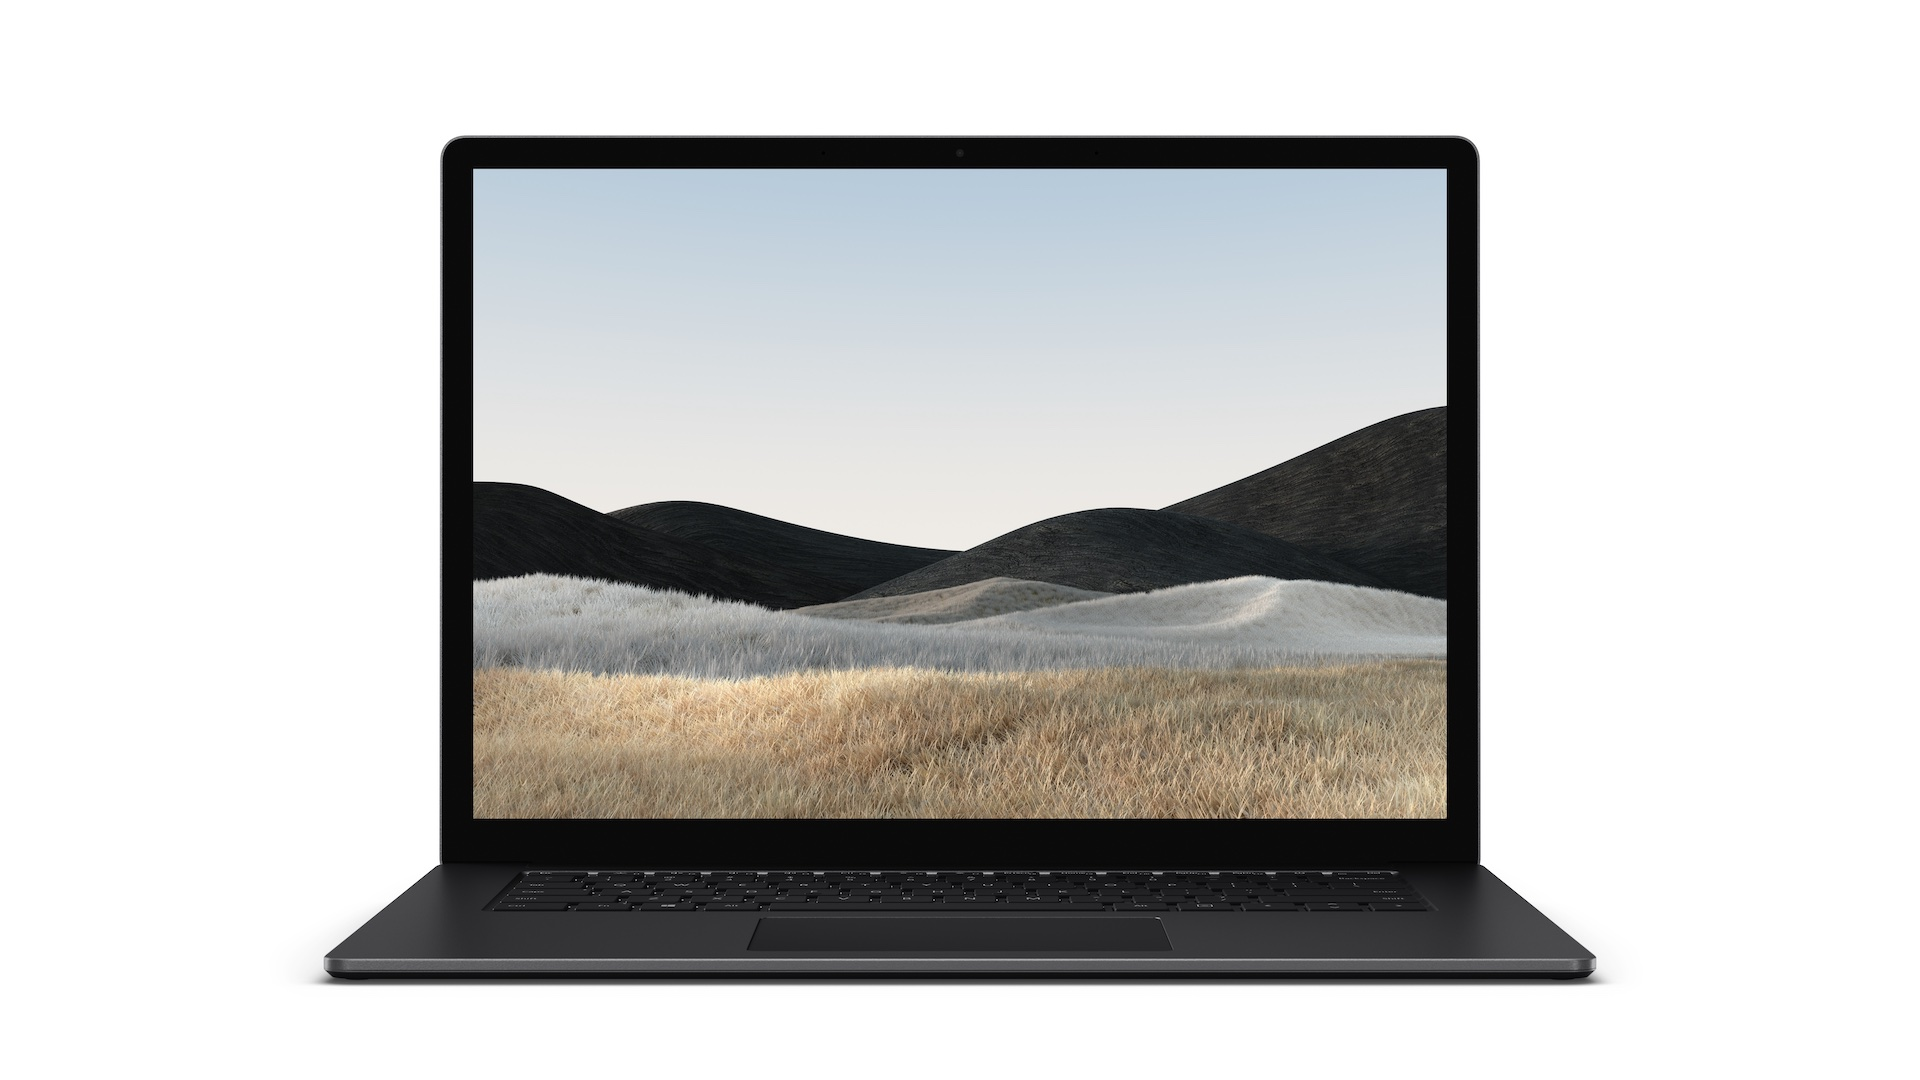 Microsoft Surface Laptop 4 - 15in / i7-1185G7 / 16GB / 256GB, Black; Commercial